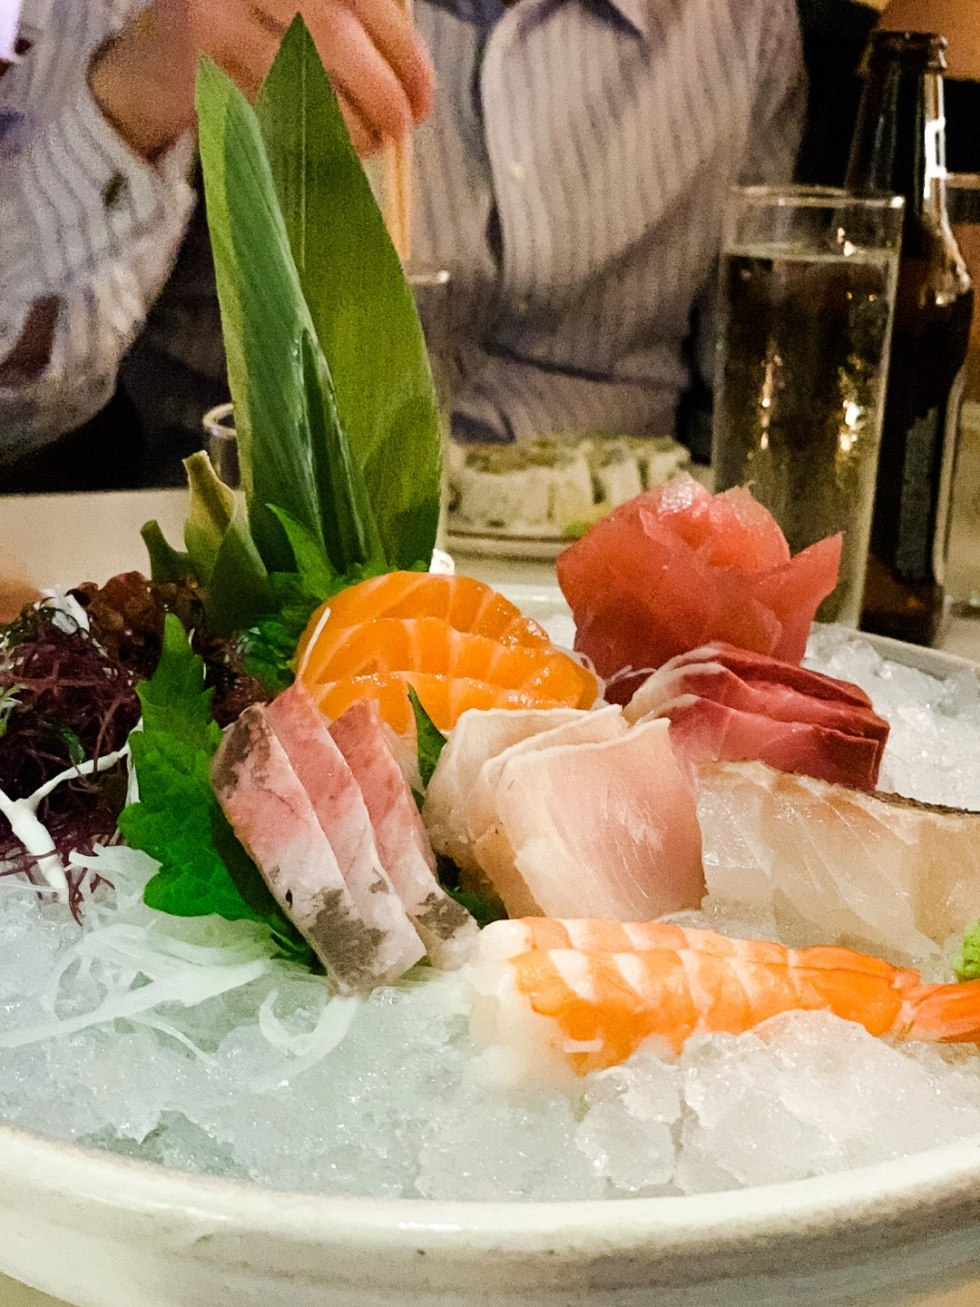 Warming Up in the Bahamas: the Best Things to Do at Baha Mar - I'm Fixin' To - @mbg0112 | Warming Up in the Bahamas: the Best Things to Do in Baha Mar by popular North Carolina travel blog, I'm Fixin' To: image of sashimi.